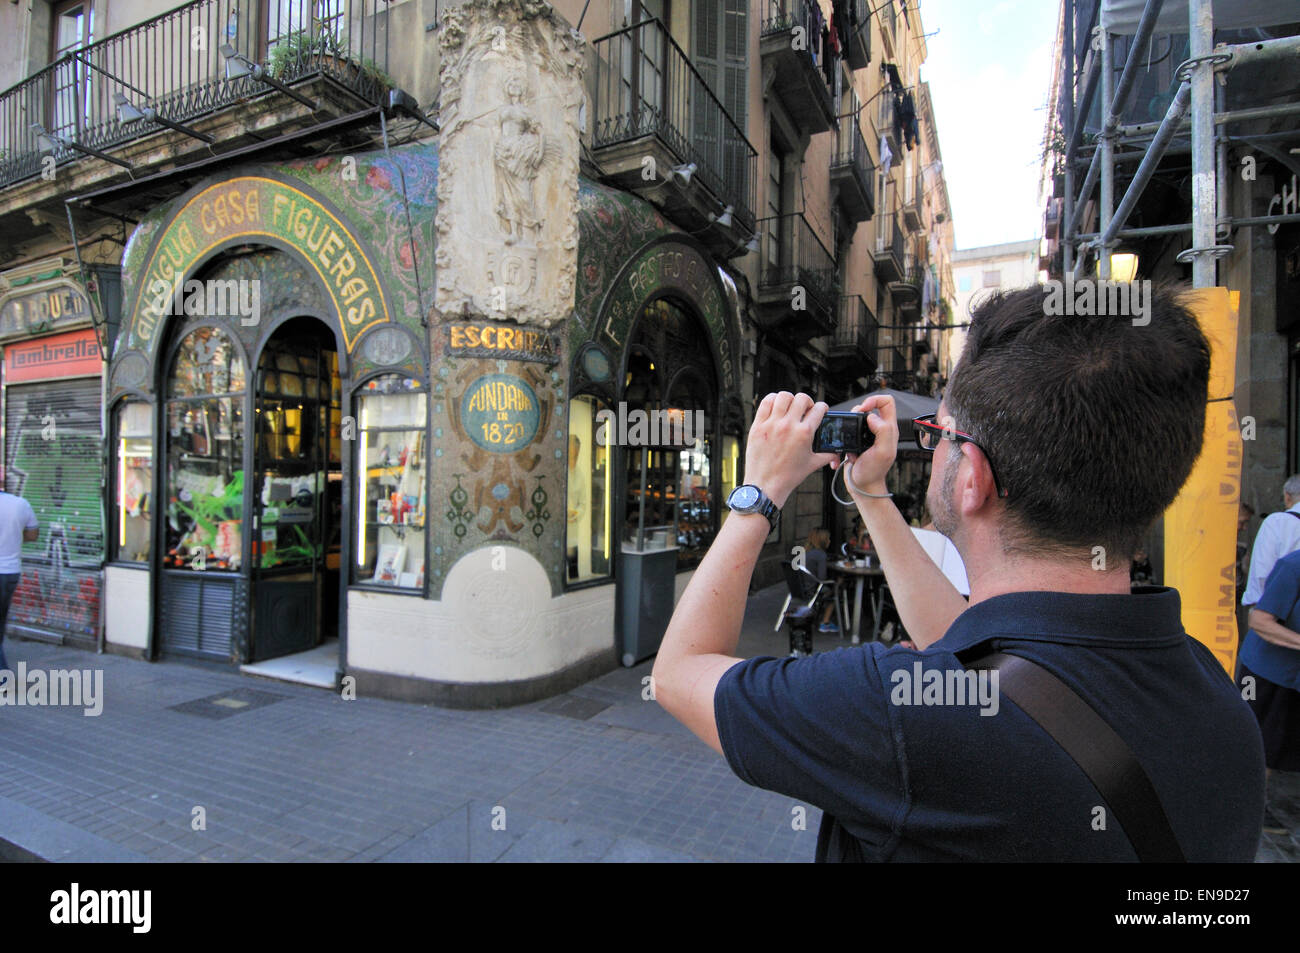 Escriba pastry shop at La Rambla Barcelona, Catalonia, Spain - Stock Image